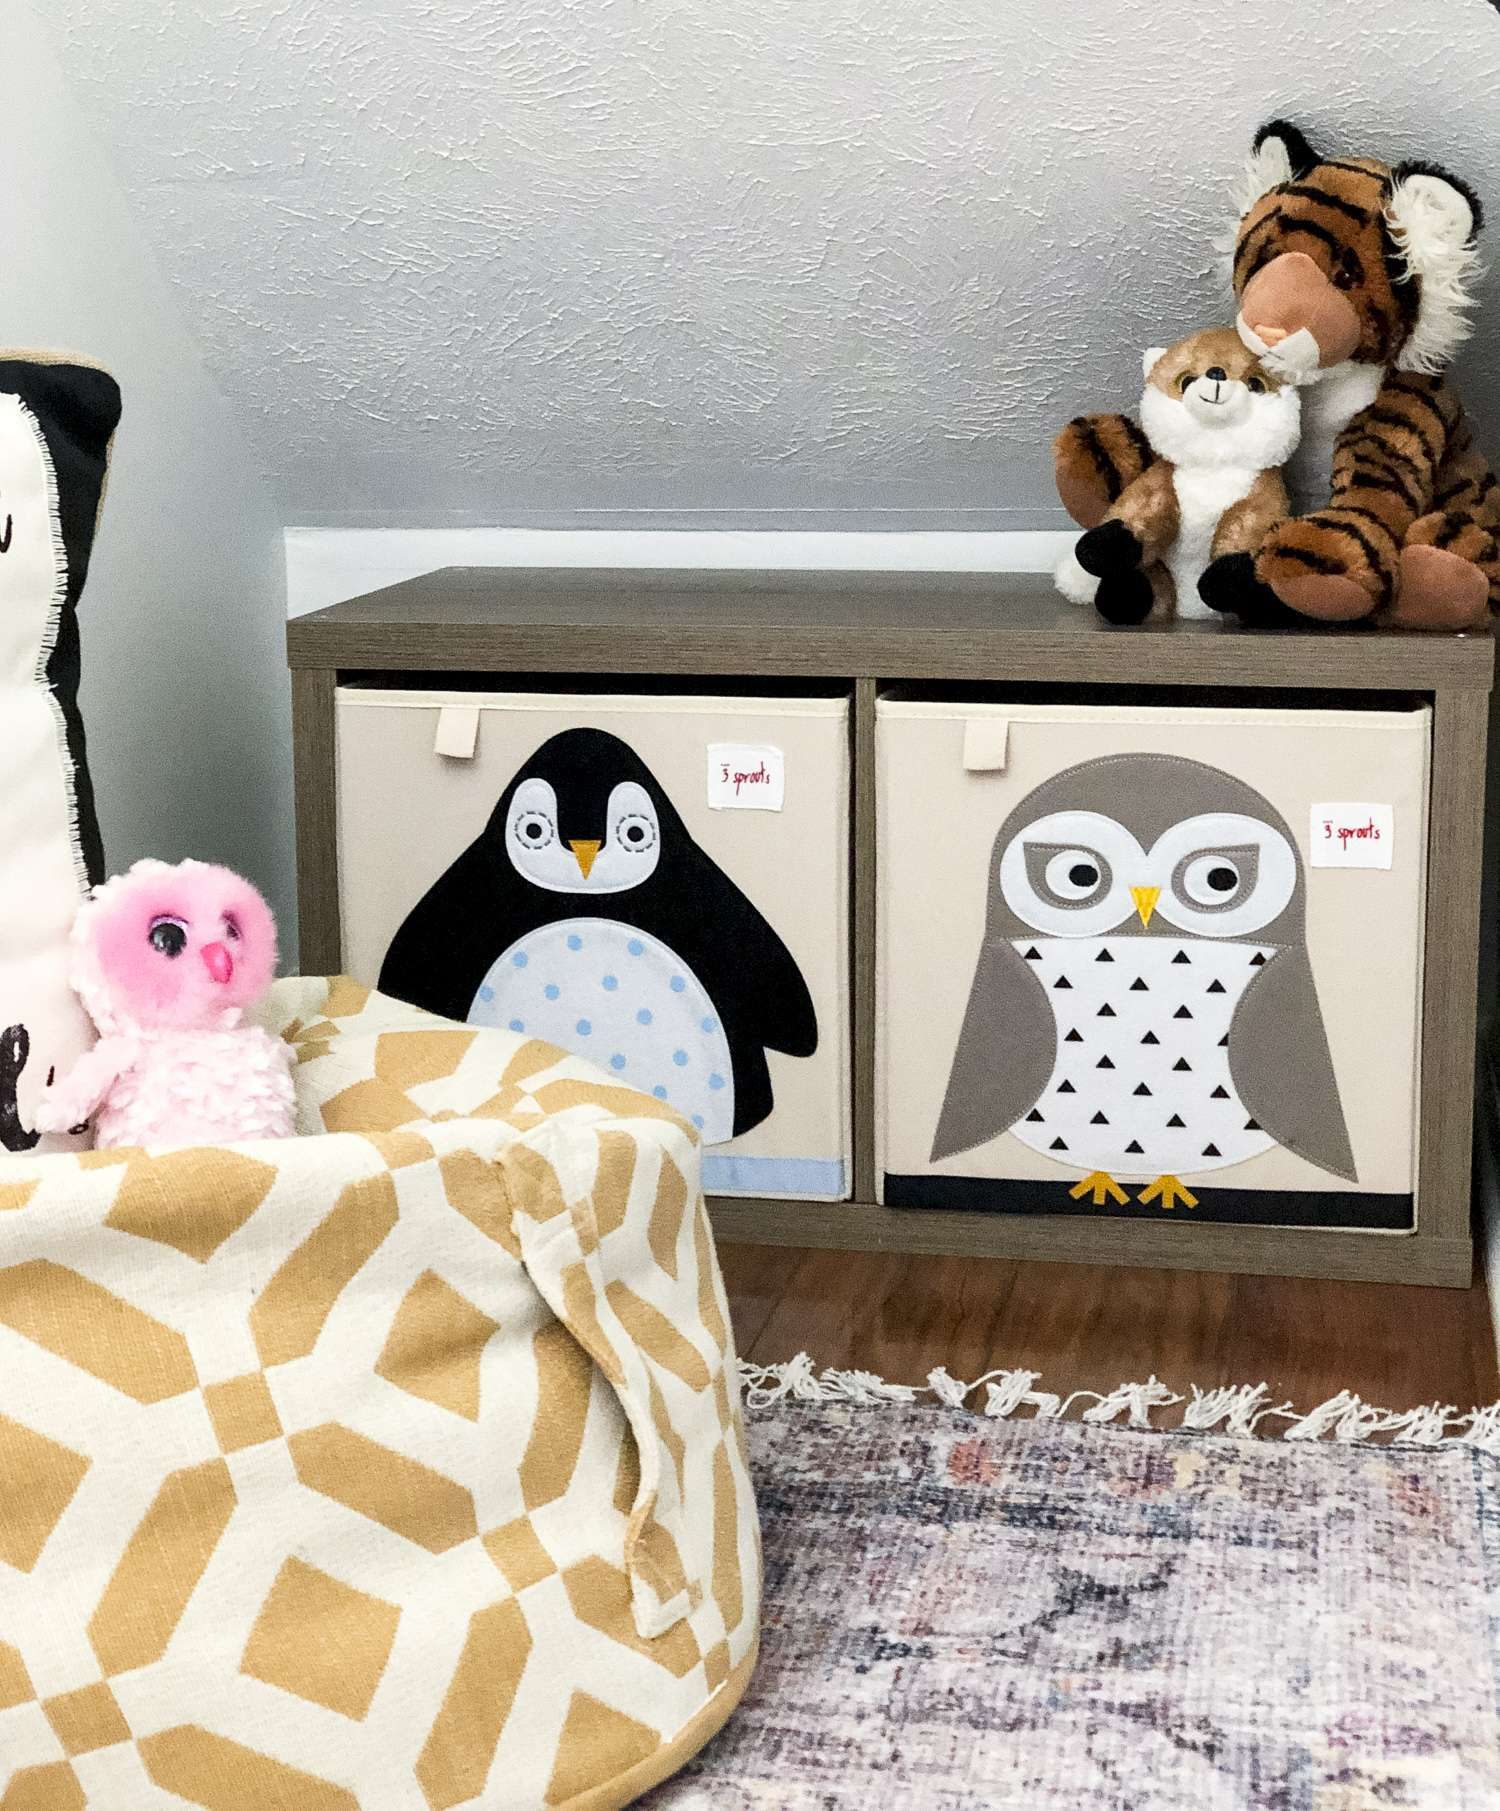 Toy storage bins for small spaces.